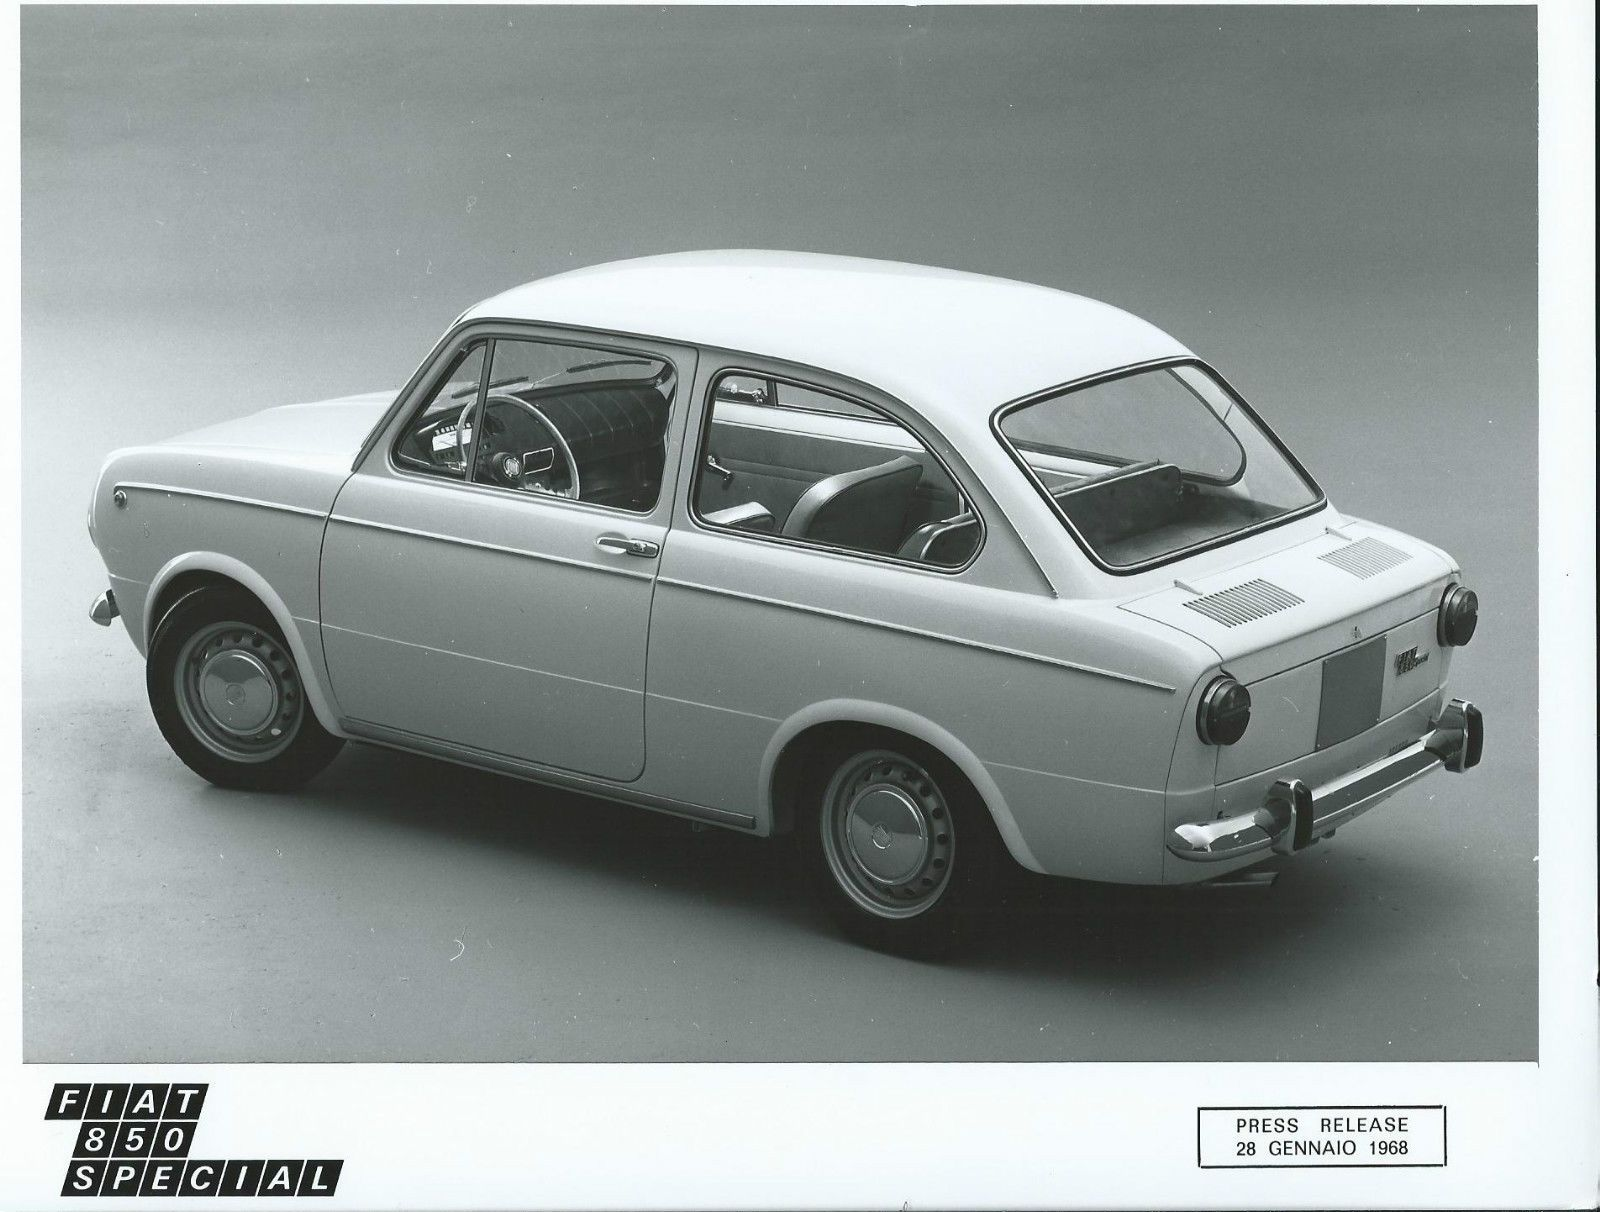 Fiat 850 Special Original 1968 Press Photograph Excellent